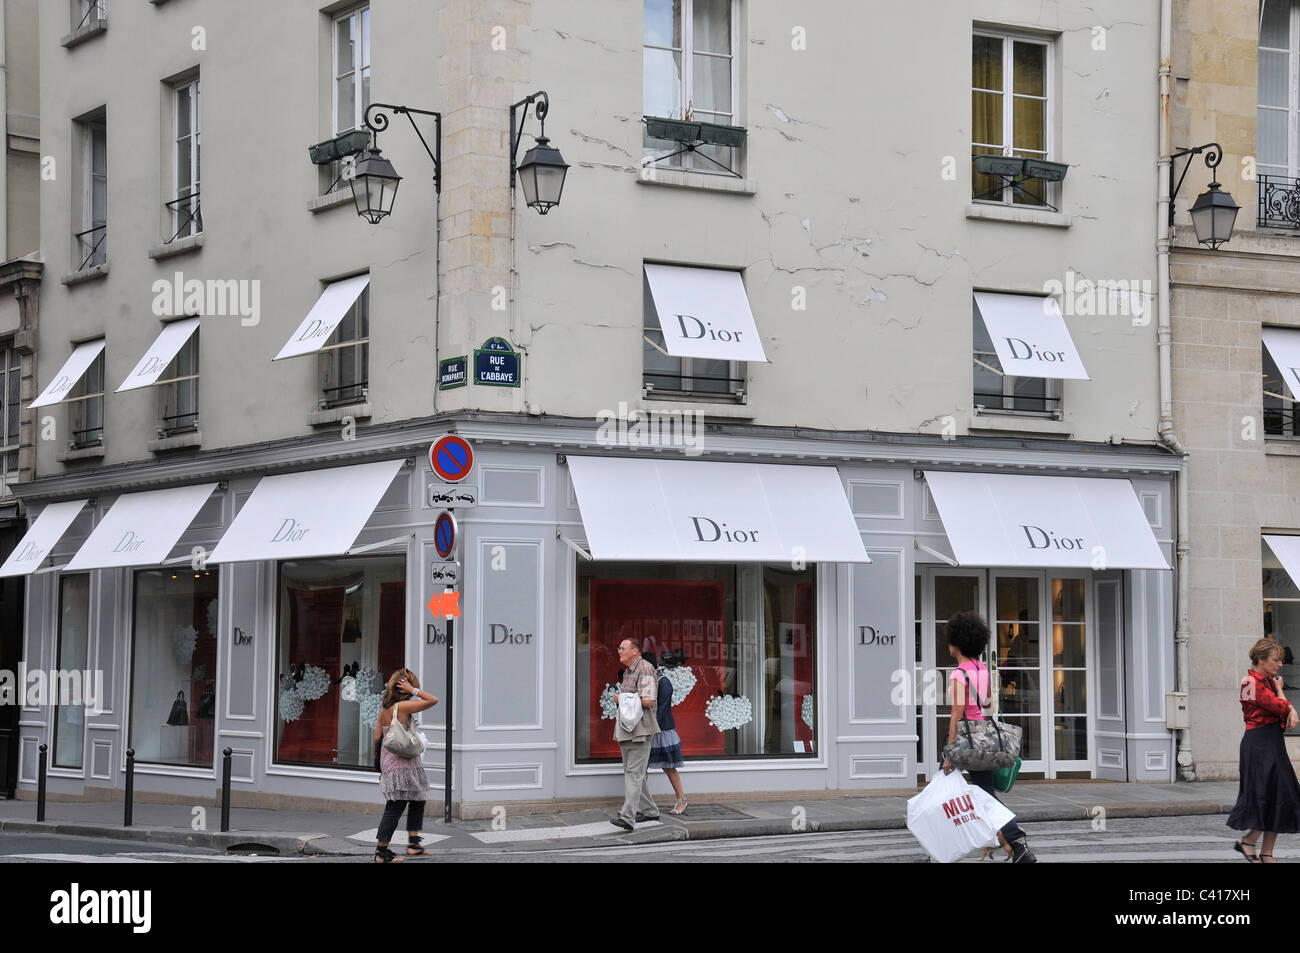 dior boutique rue de l 39 abbaye and rue bonaparte paris france stock photo royalty free image. Black Bedroom Furniture Sets. Home Design Ideas